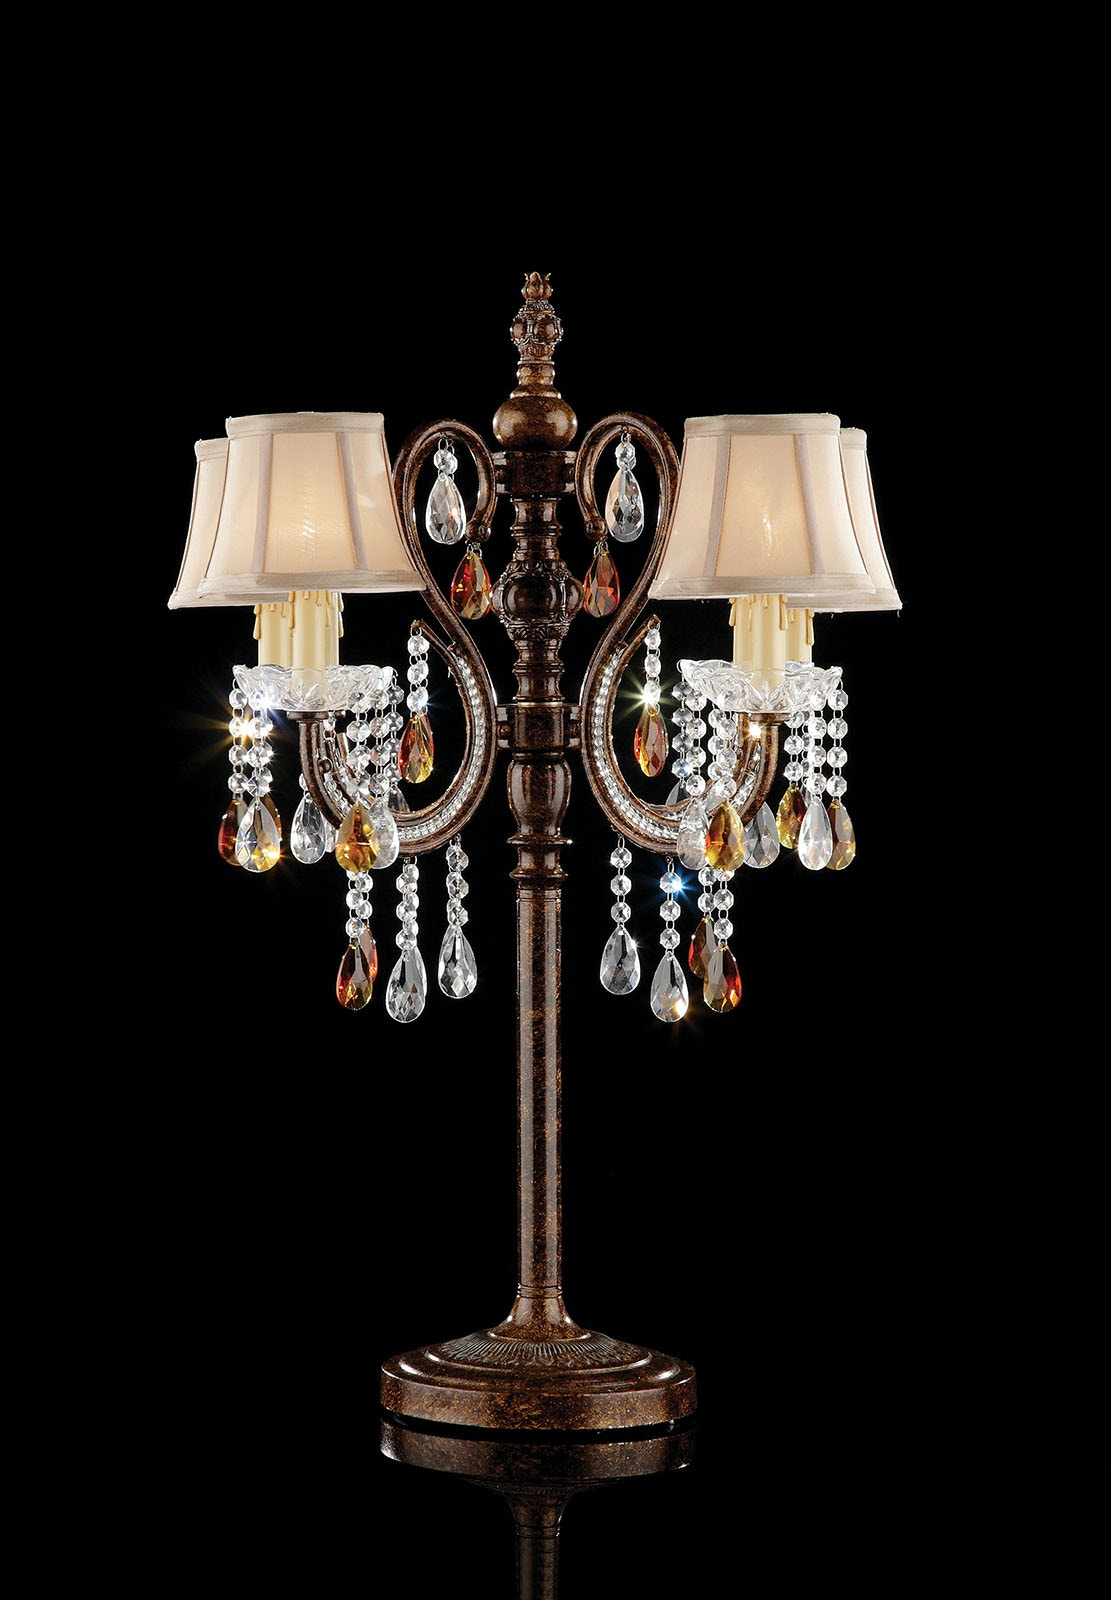 Ordinaire Furniture Of America Lamps And Lighting Table Lamp, Hanging Crystal L95113T  At The Furniture Mall